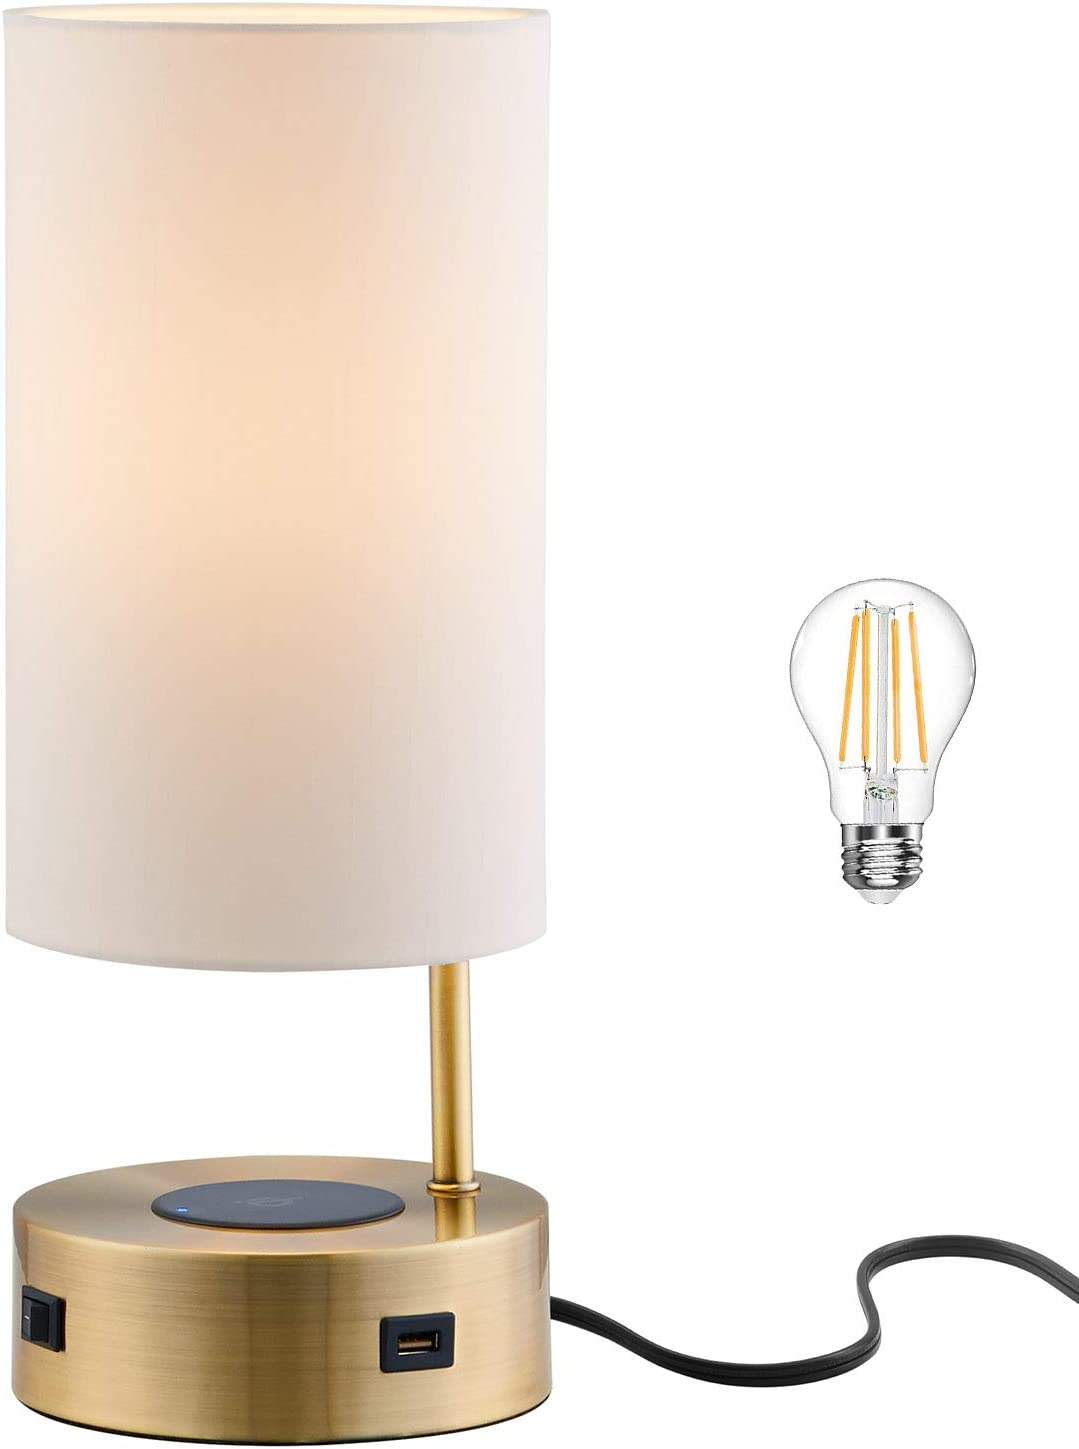 Lampression USB Nightstand Table Lamp with Wireless Charging Station for Bedroom, Modern Bedside Lamp for Living Room, Antique Brass with Ivory Shade Office Desk Lamp, LED Bulb Included